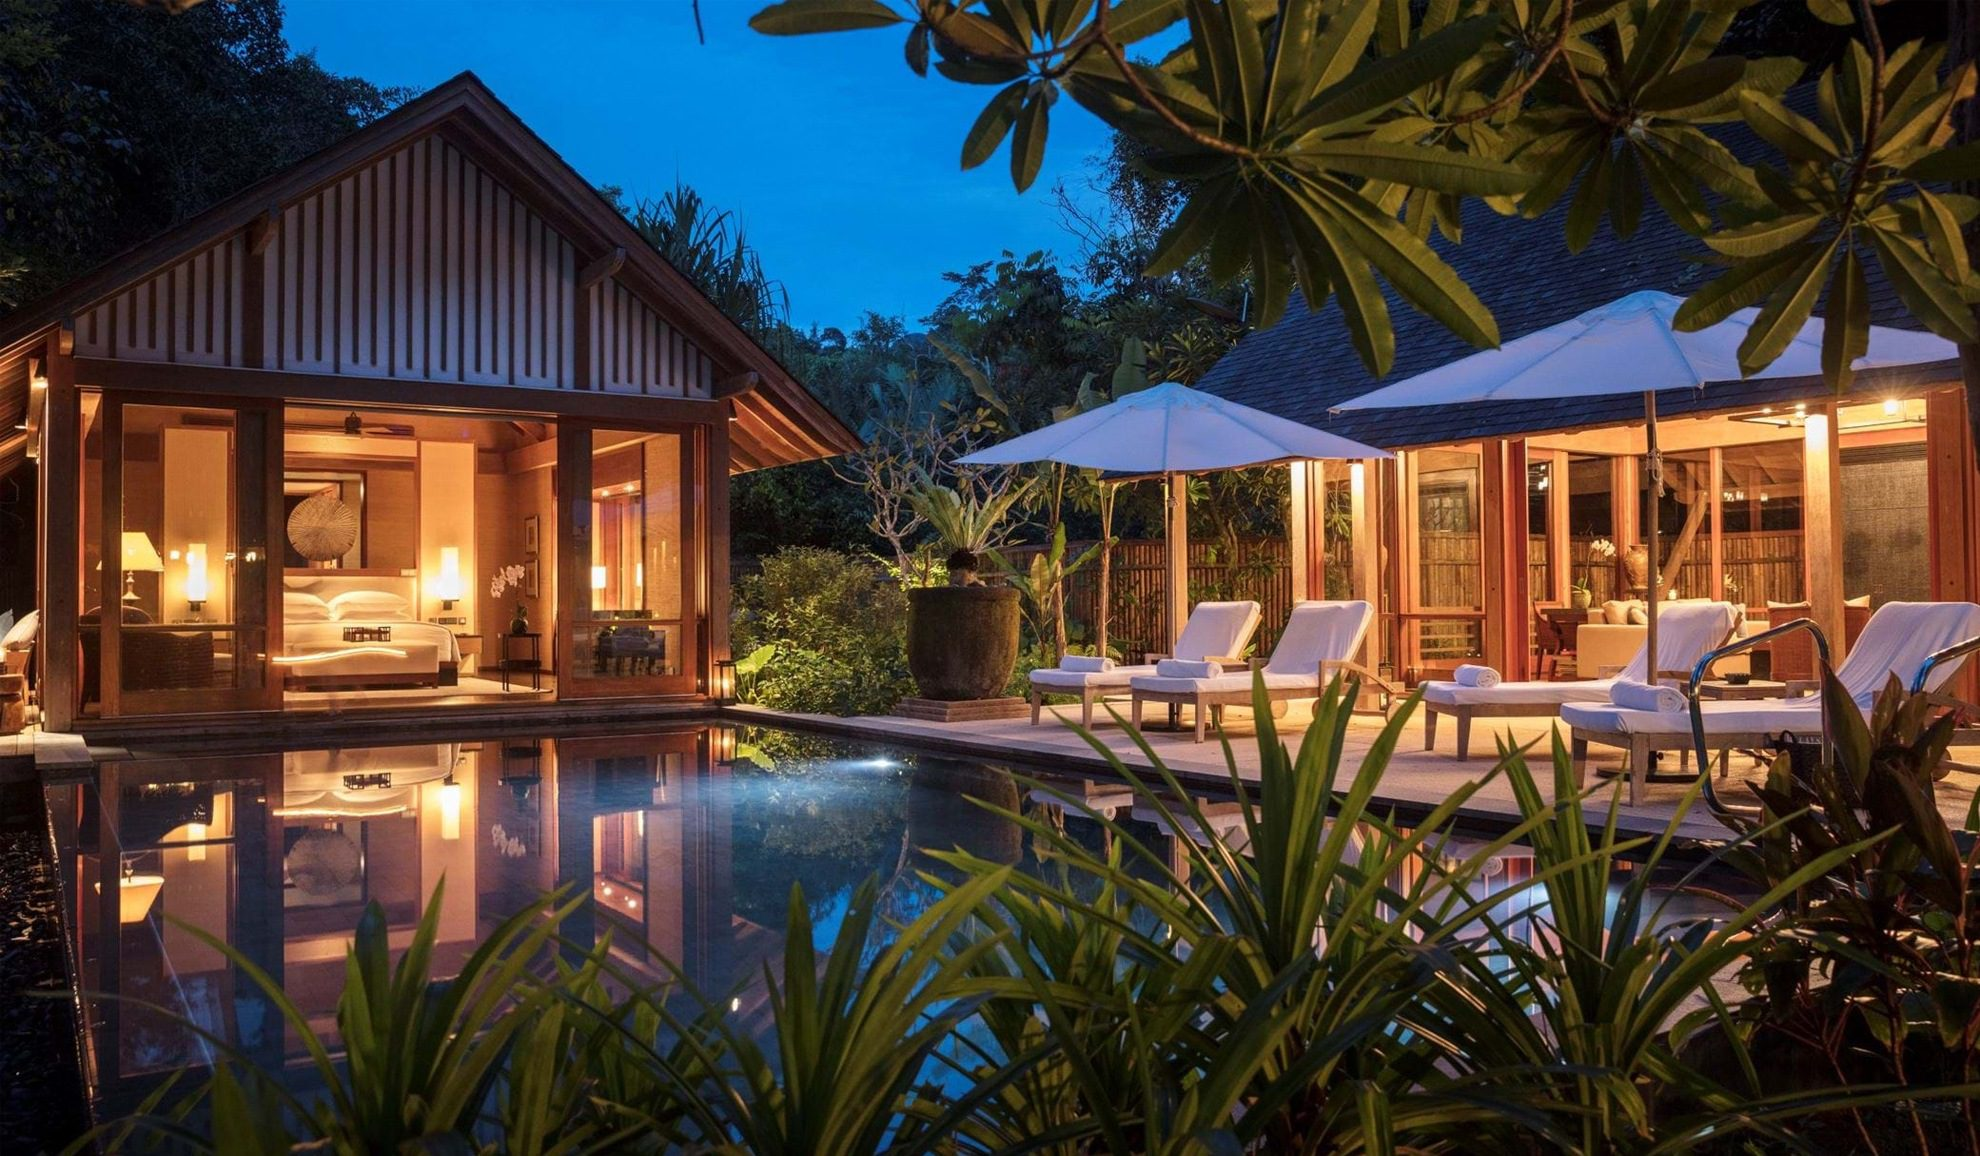 Top 12 New Luxury Hotels You Should Book In 2019